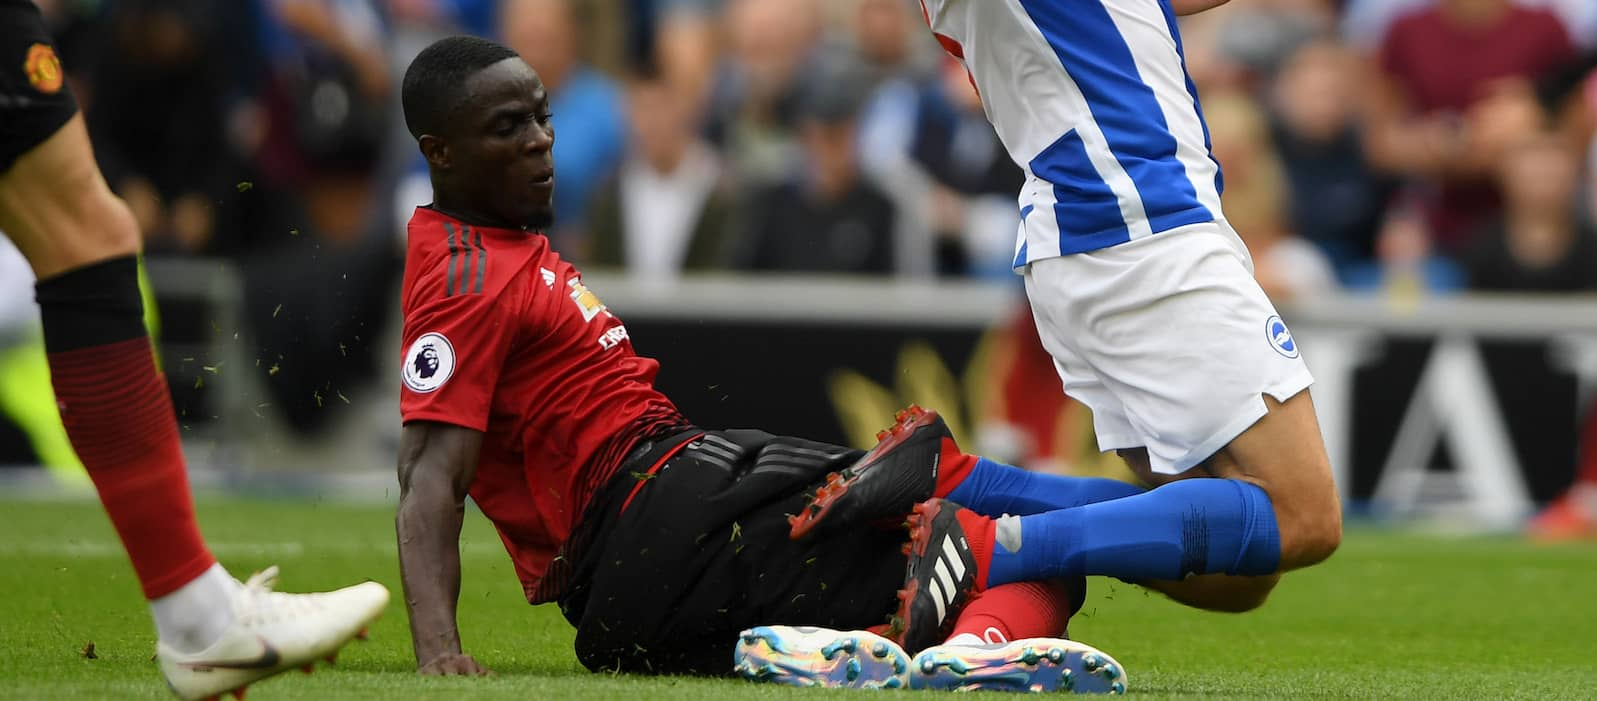 Eric Bailly to depart Manchester United next summer: report